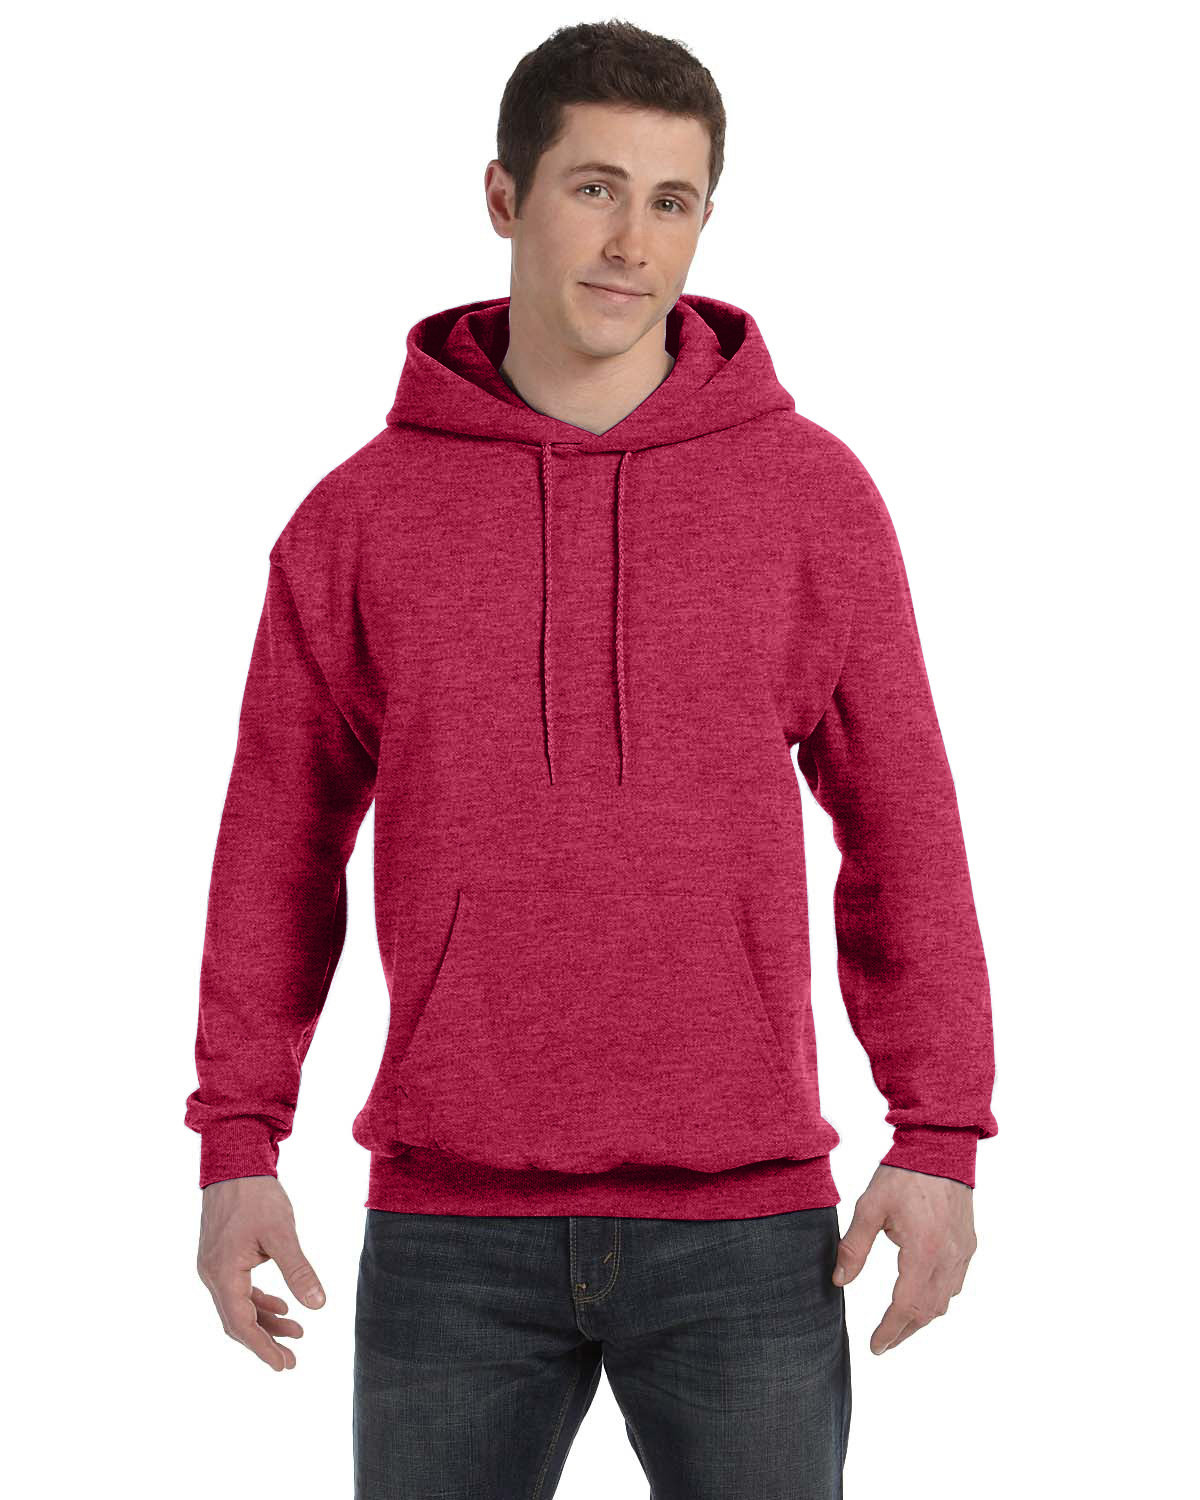 Hanes Unisex Ecosmart® 50/50 Pullover Hooded Sweatshirt HEATHER RED